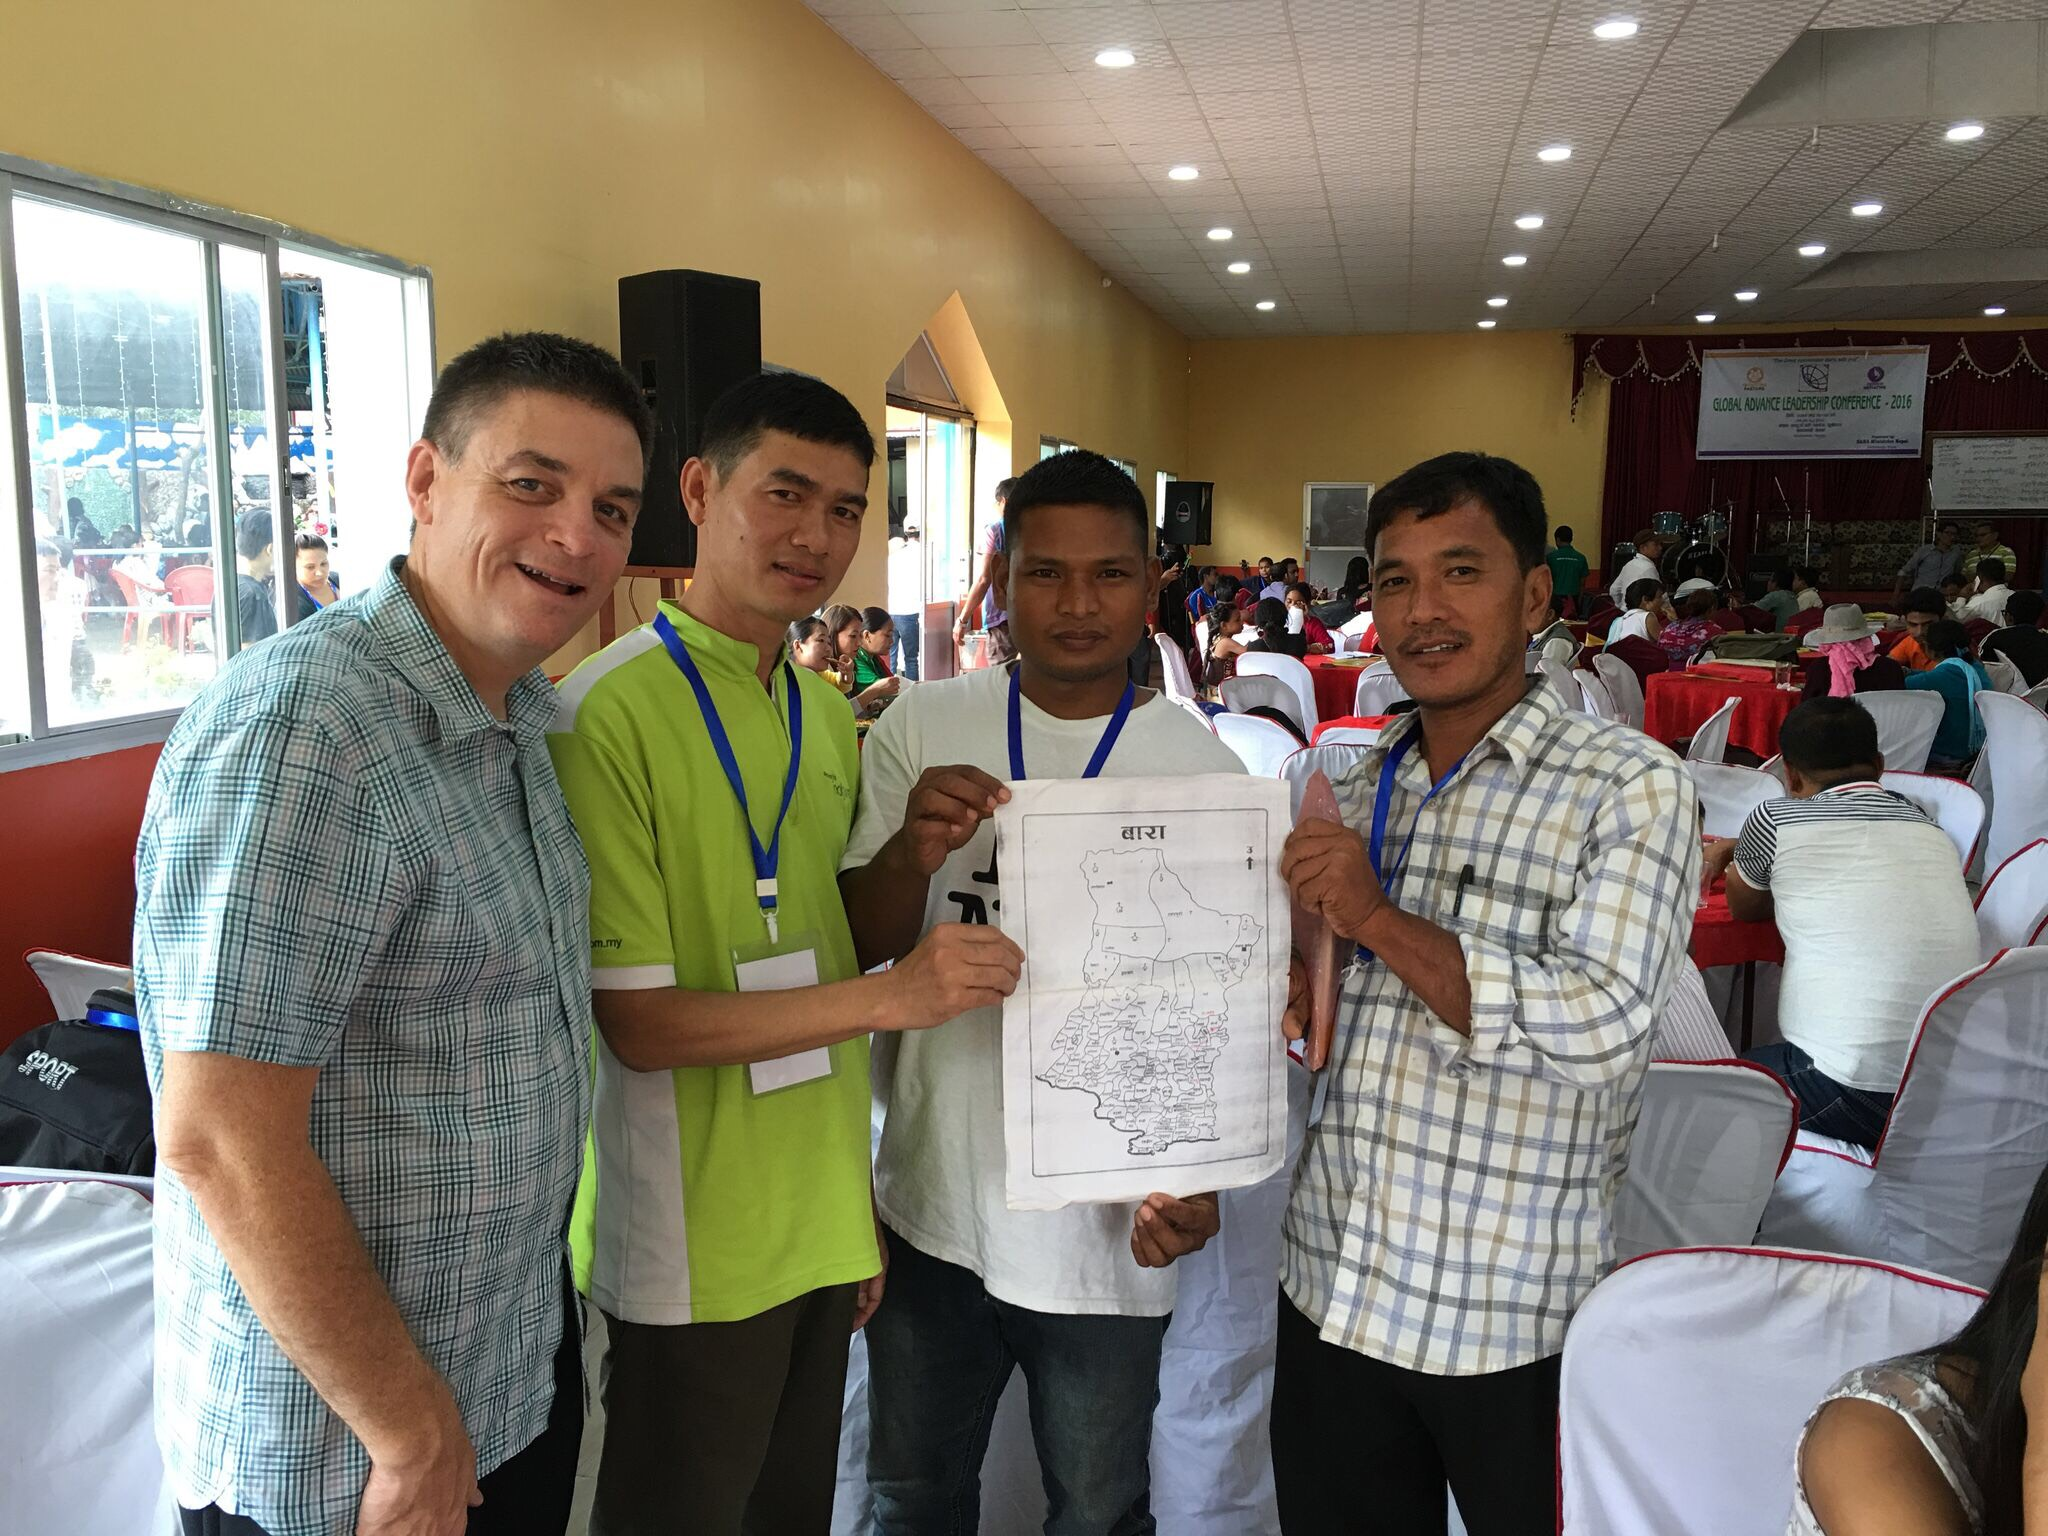 Last fall, hundreds of pastors in Nepal responded to the call to plant new churches.